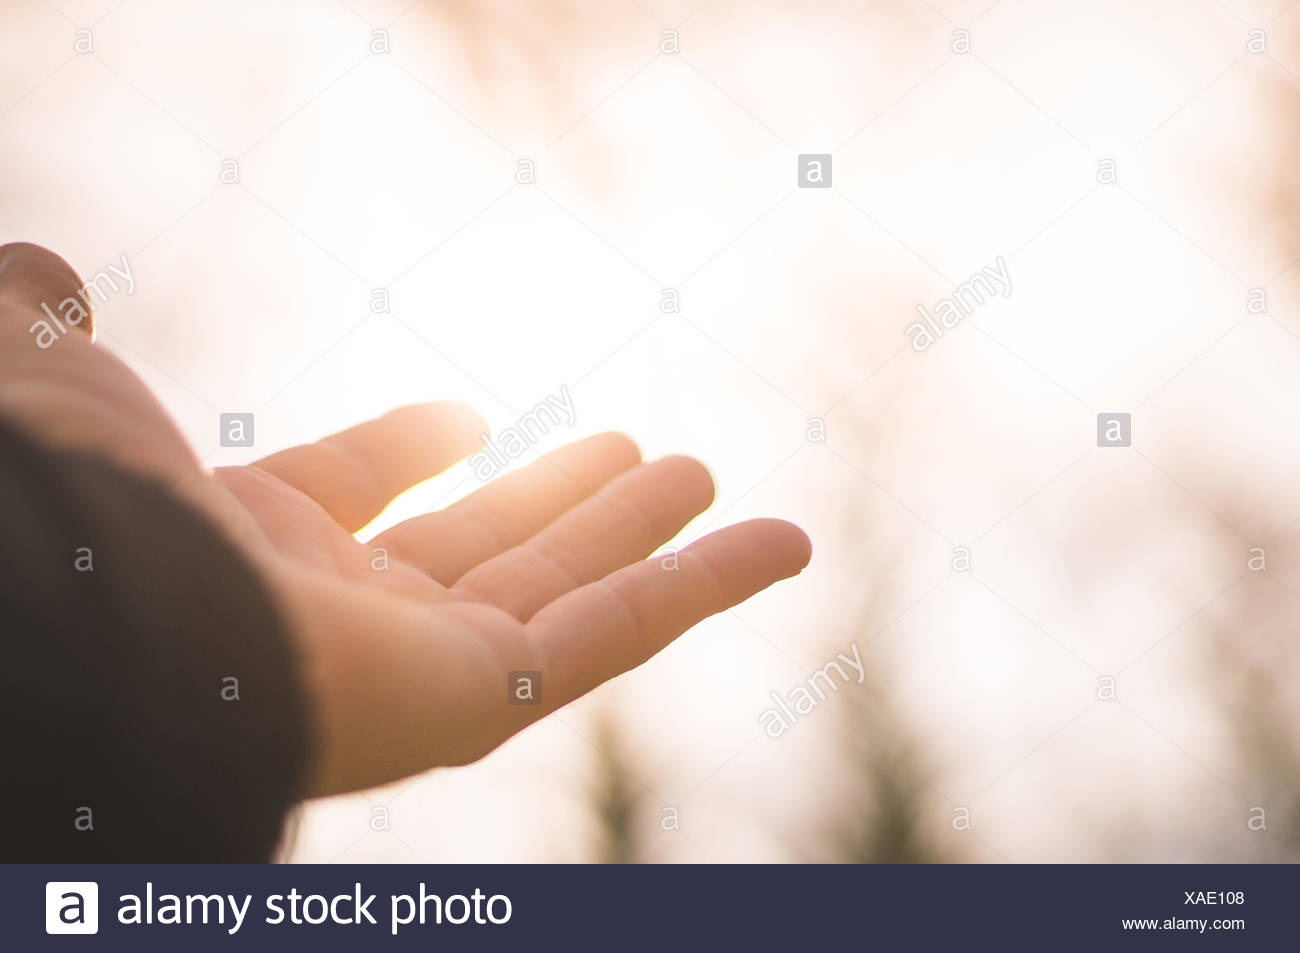 Person hand in front of sunlight - Stock Image